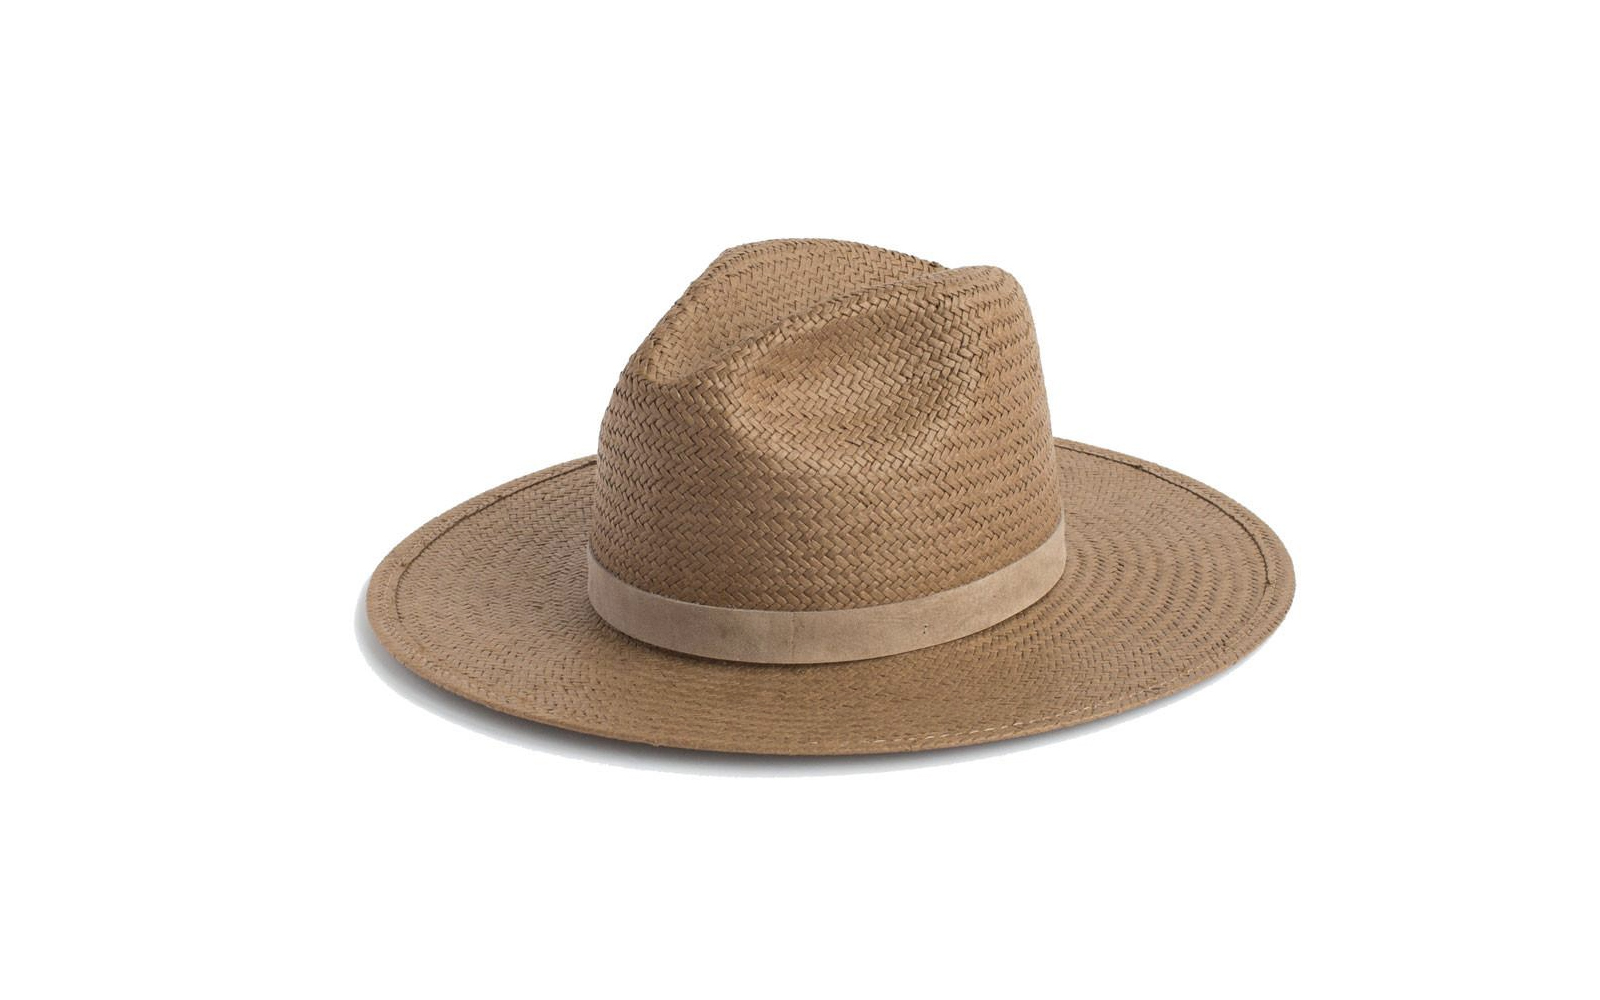 Janessa Leone 'Adriana' Packable Straw Hat